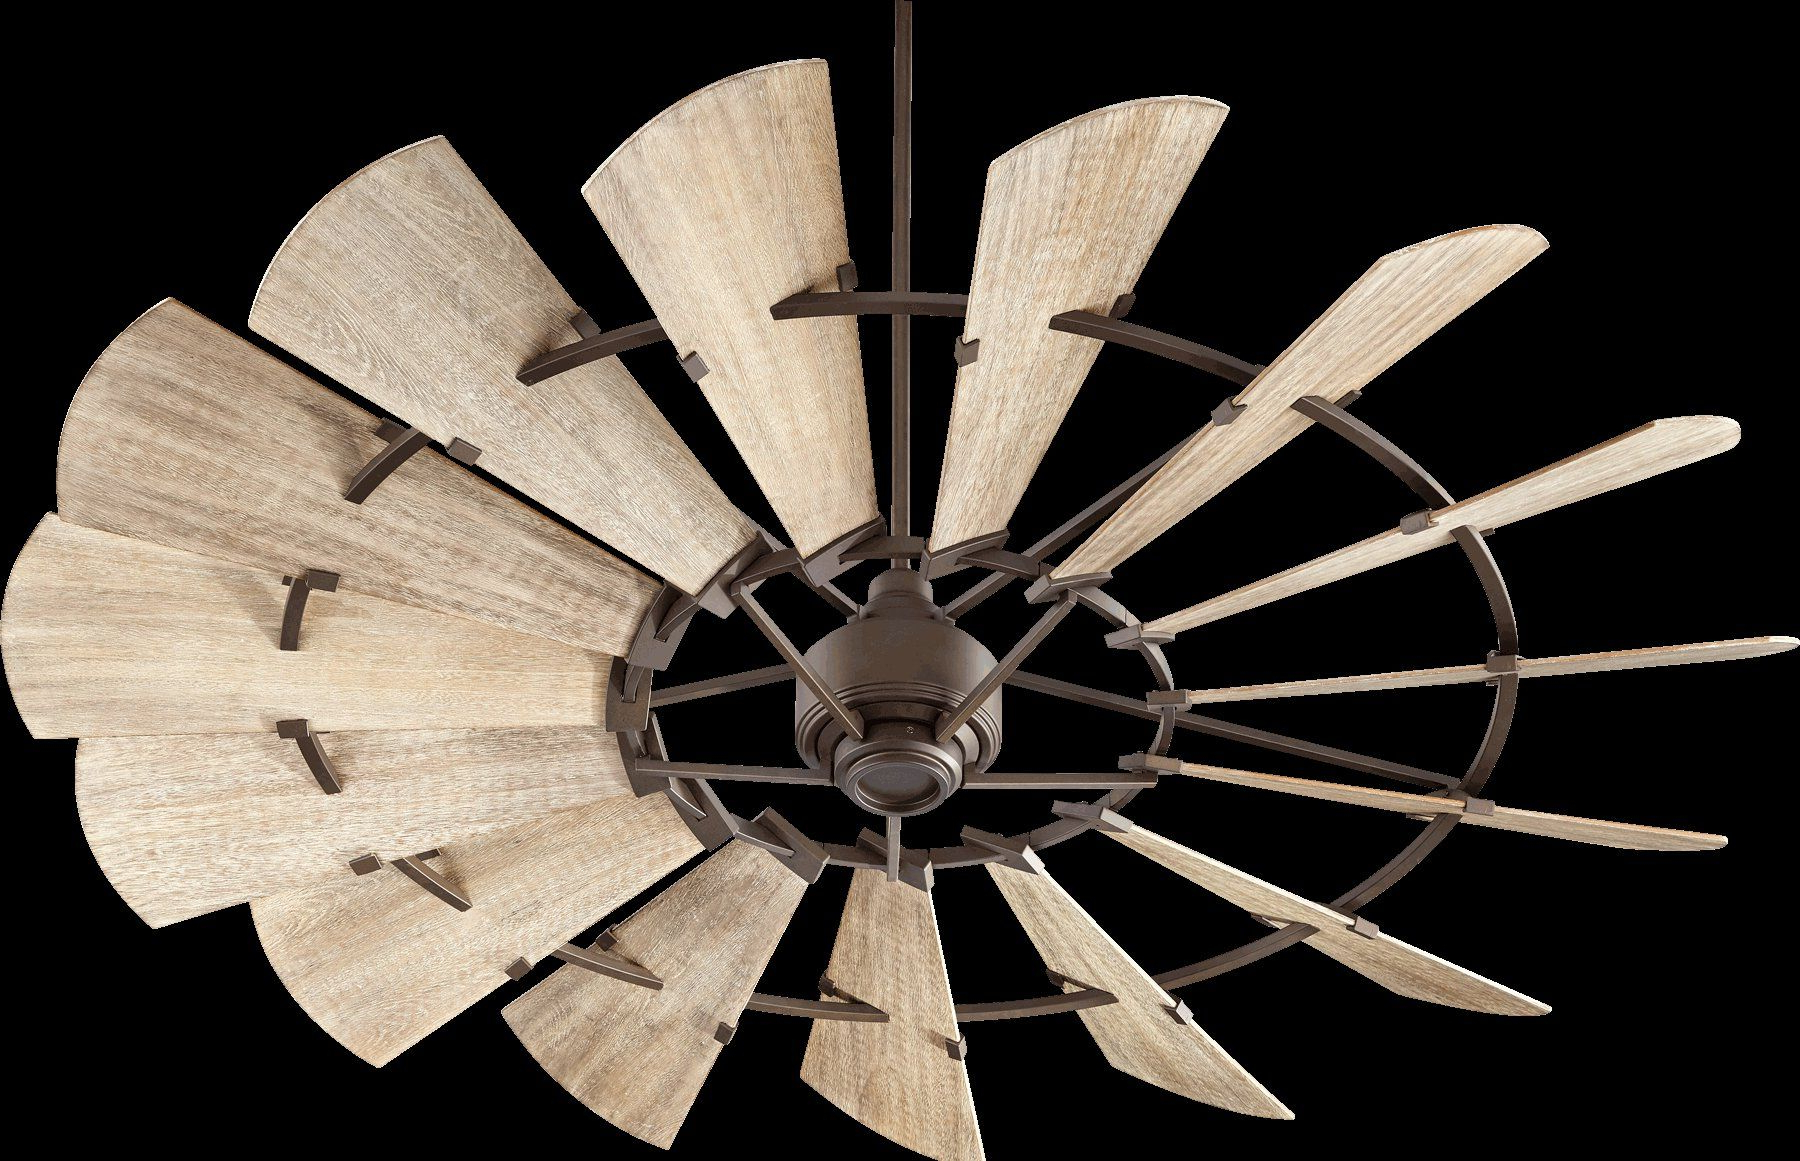 "Widely Used Joanne Windmill 15 Blade Ceiling Fans Inside 72"" Joanne Windmill 15 Blade Ceiling Fan (View 4 of 20)"